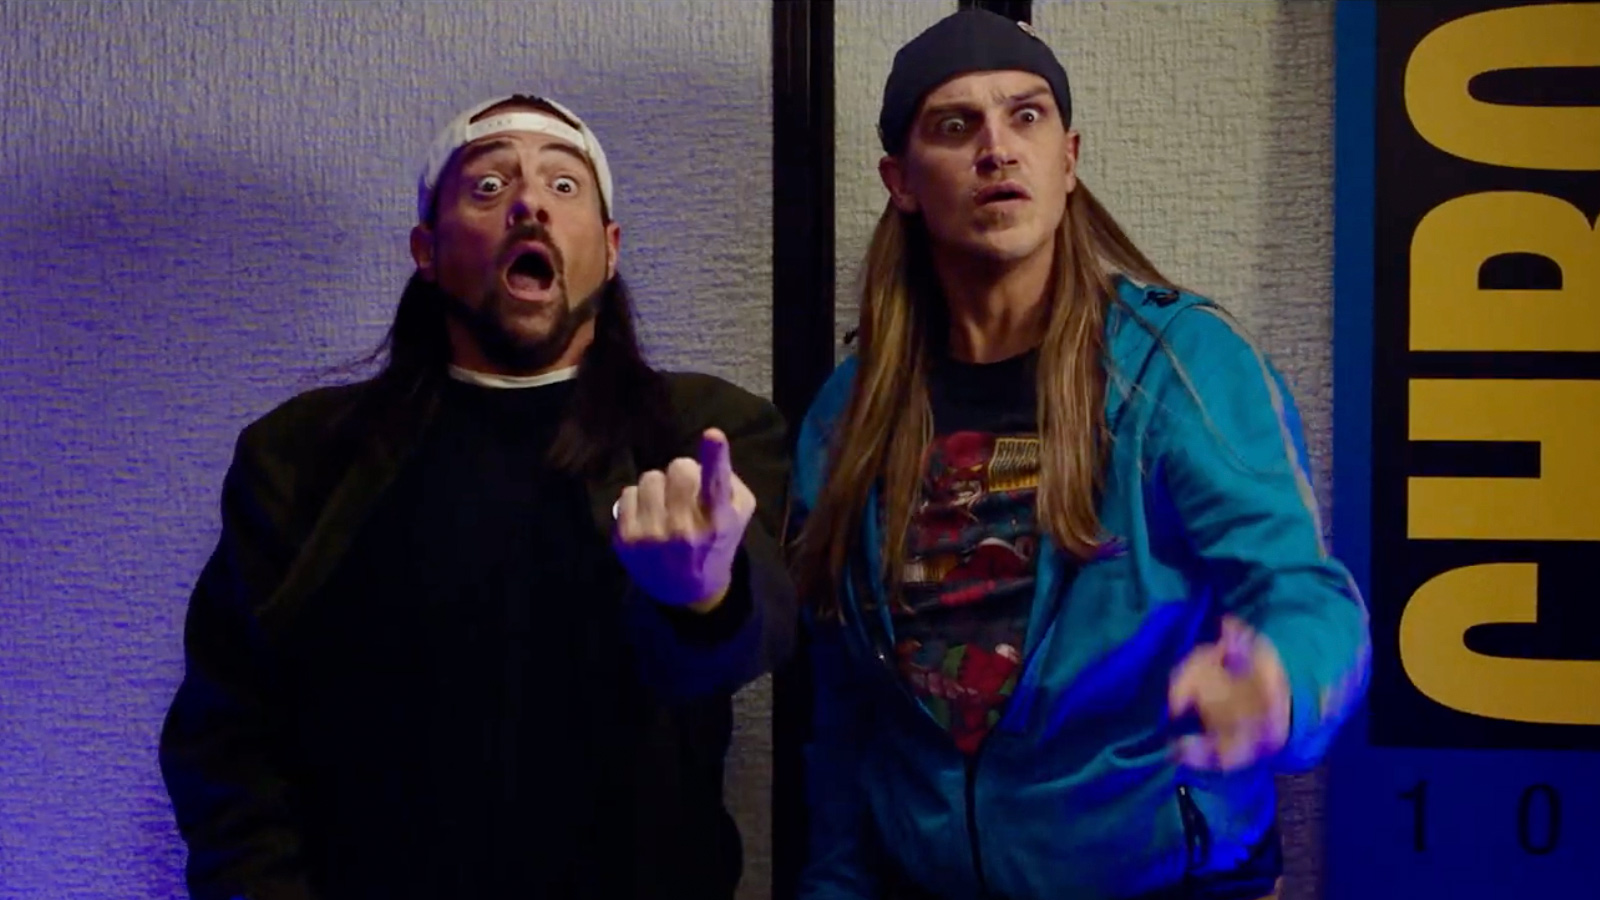 'Jay and Silent Bob Reboot': See Wild New Trailer With Ben Affleck, Matt Damon, More